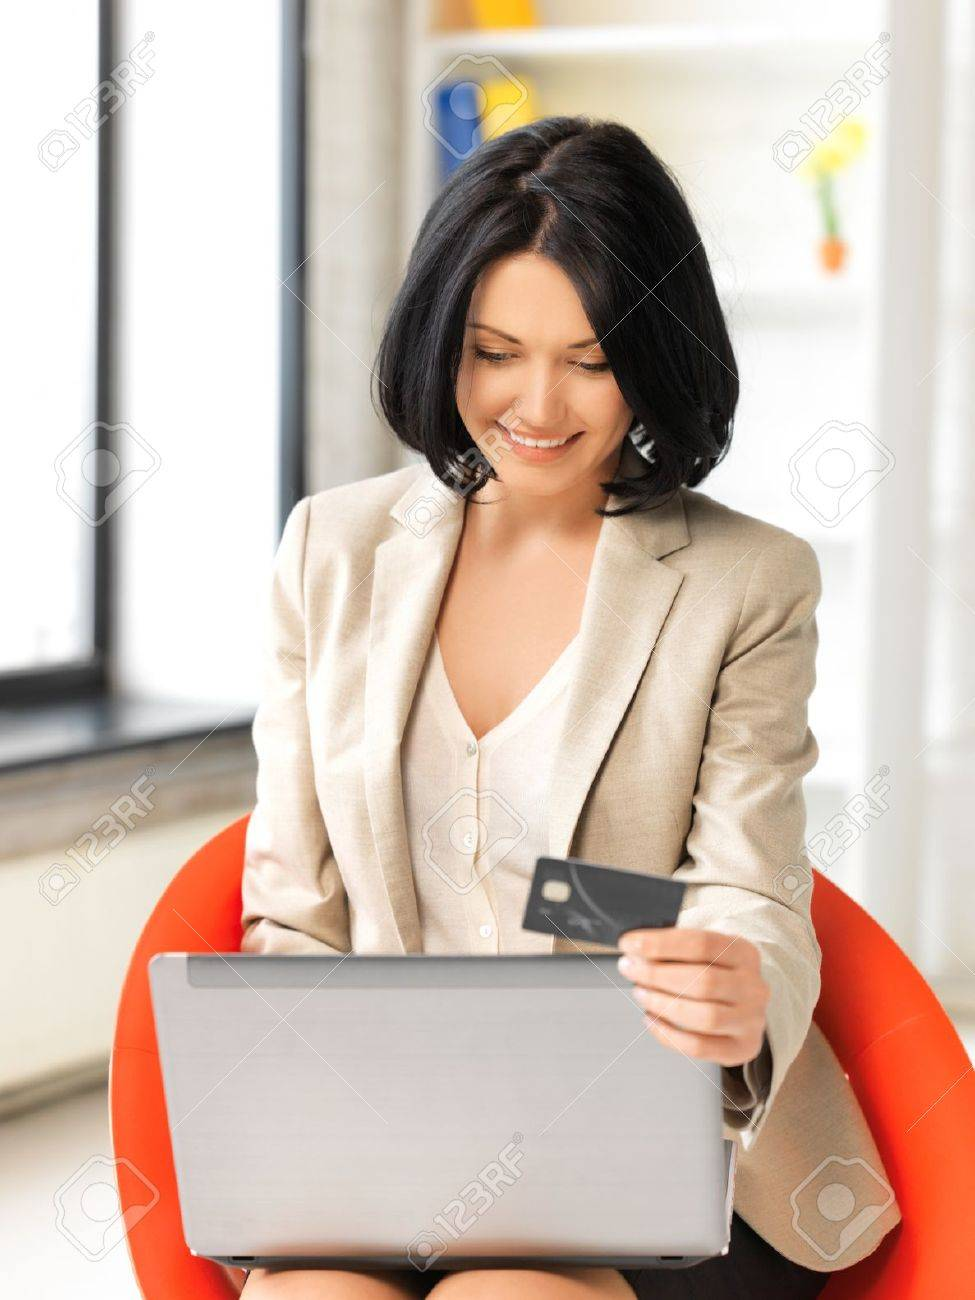 picture of happy woman with laptop computer and credit card Stock Photo - 13582378